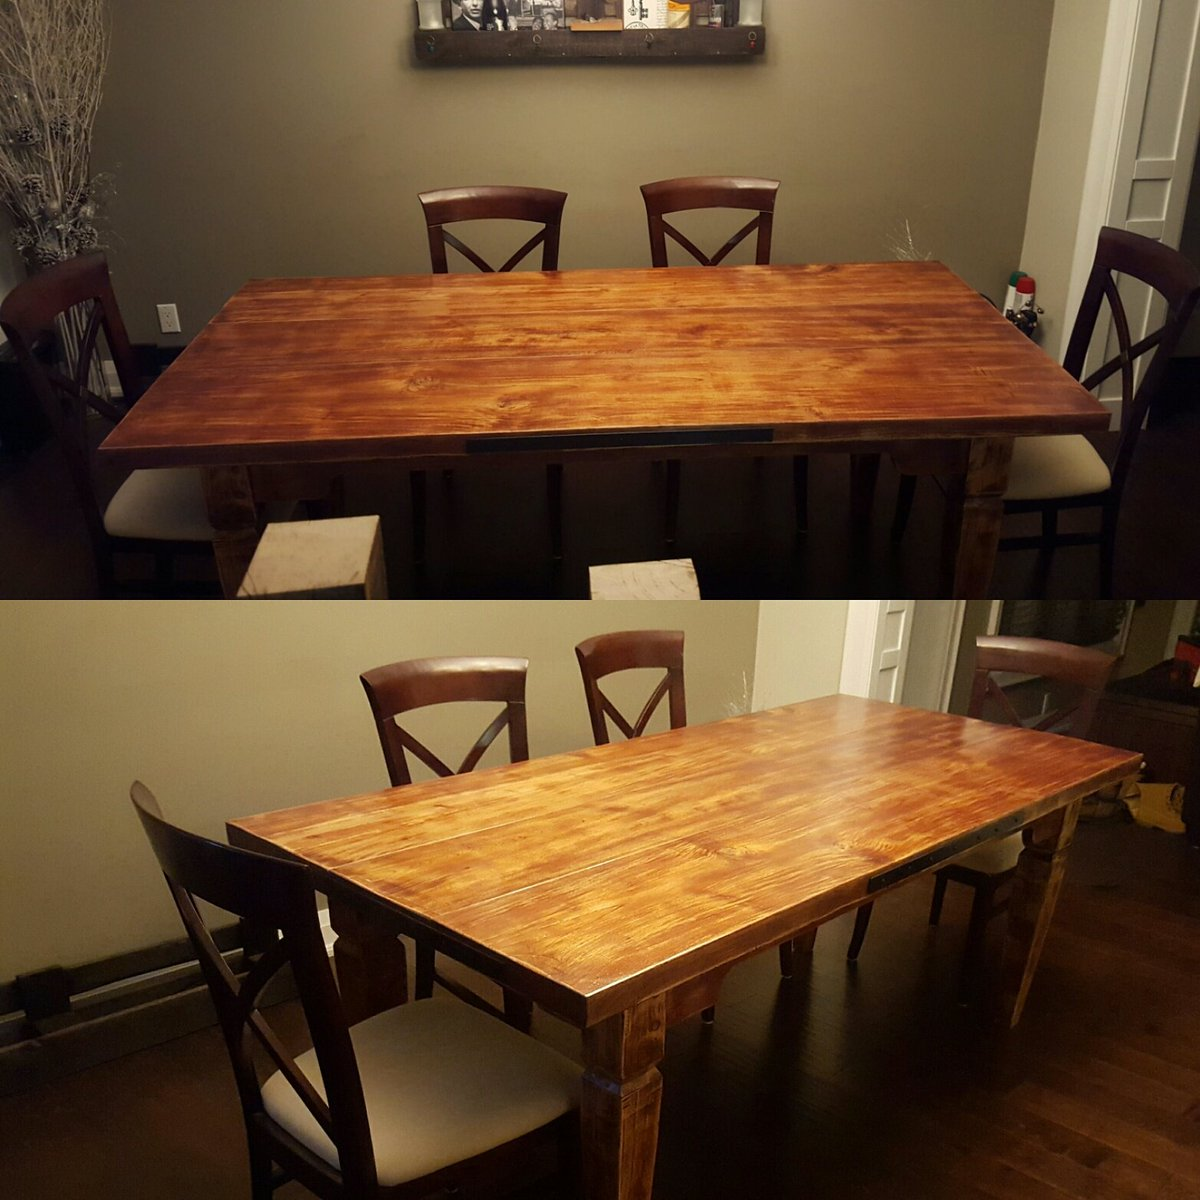 Rude On Twitter New Harvest Table Set Up 60 Year Old White Oak One Of A Kind Customfurniture Carpentry Reclaimedwood Rustic Tco DMR9FUNYZr